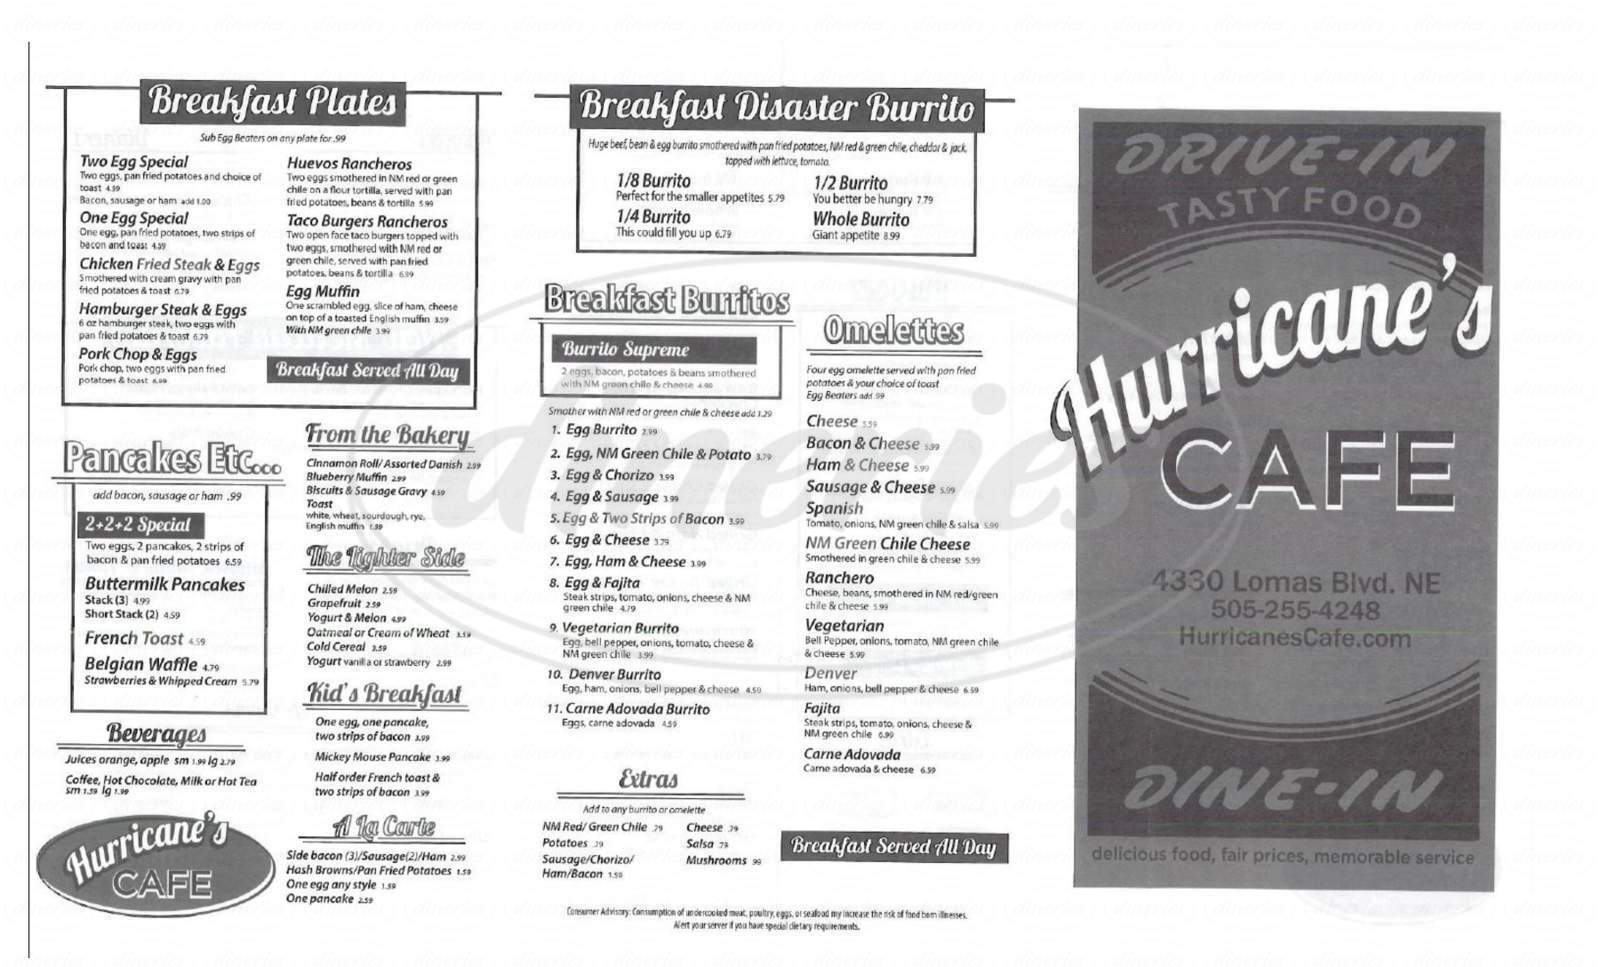 menu for Hurricane's Restaurant & Drive-In